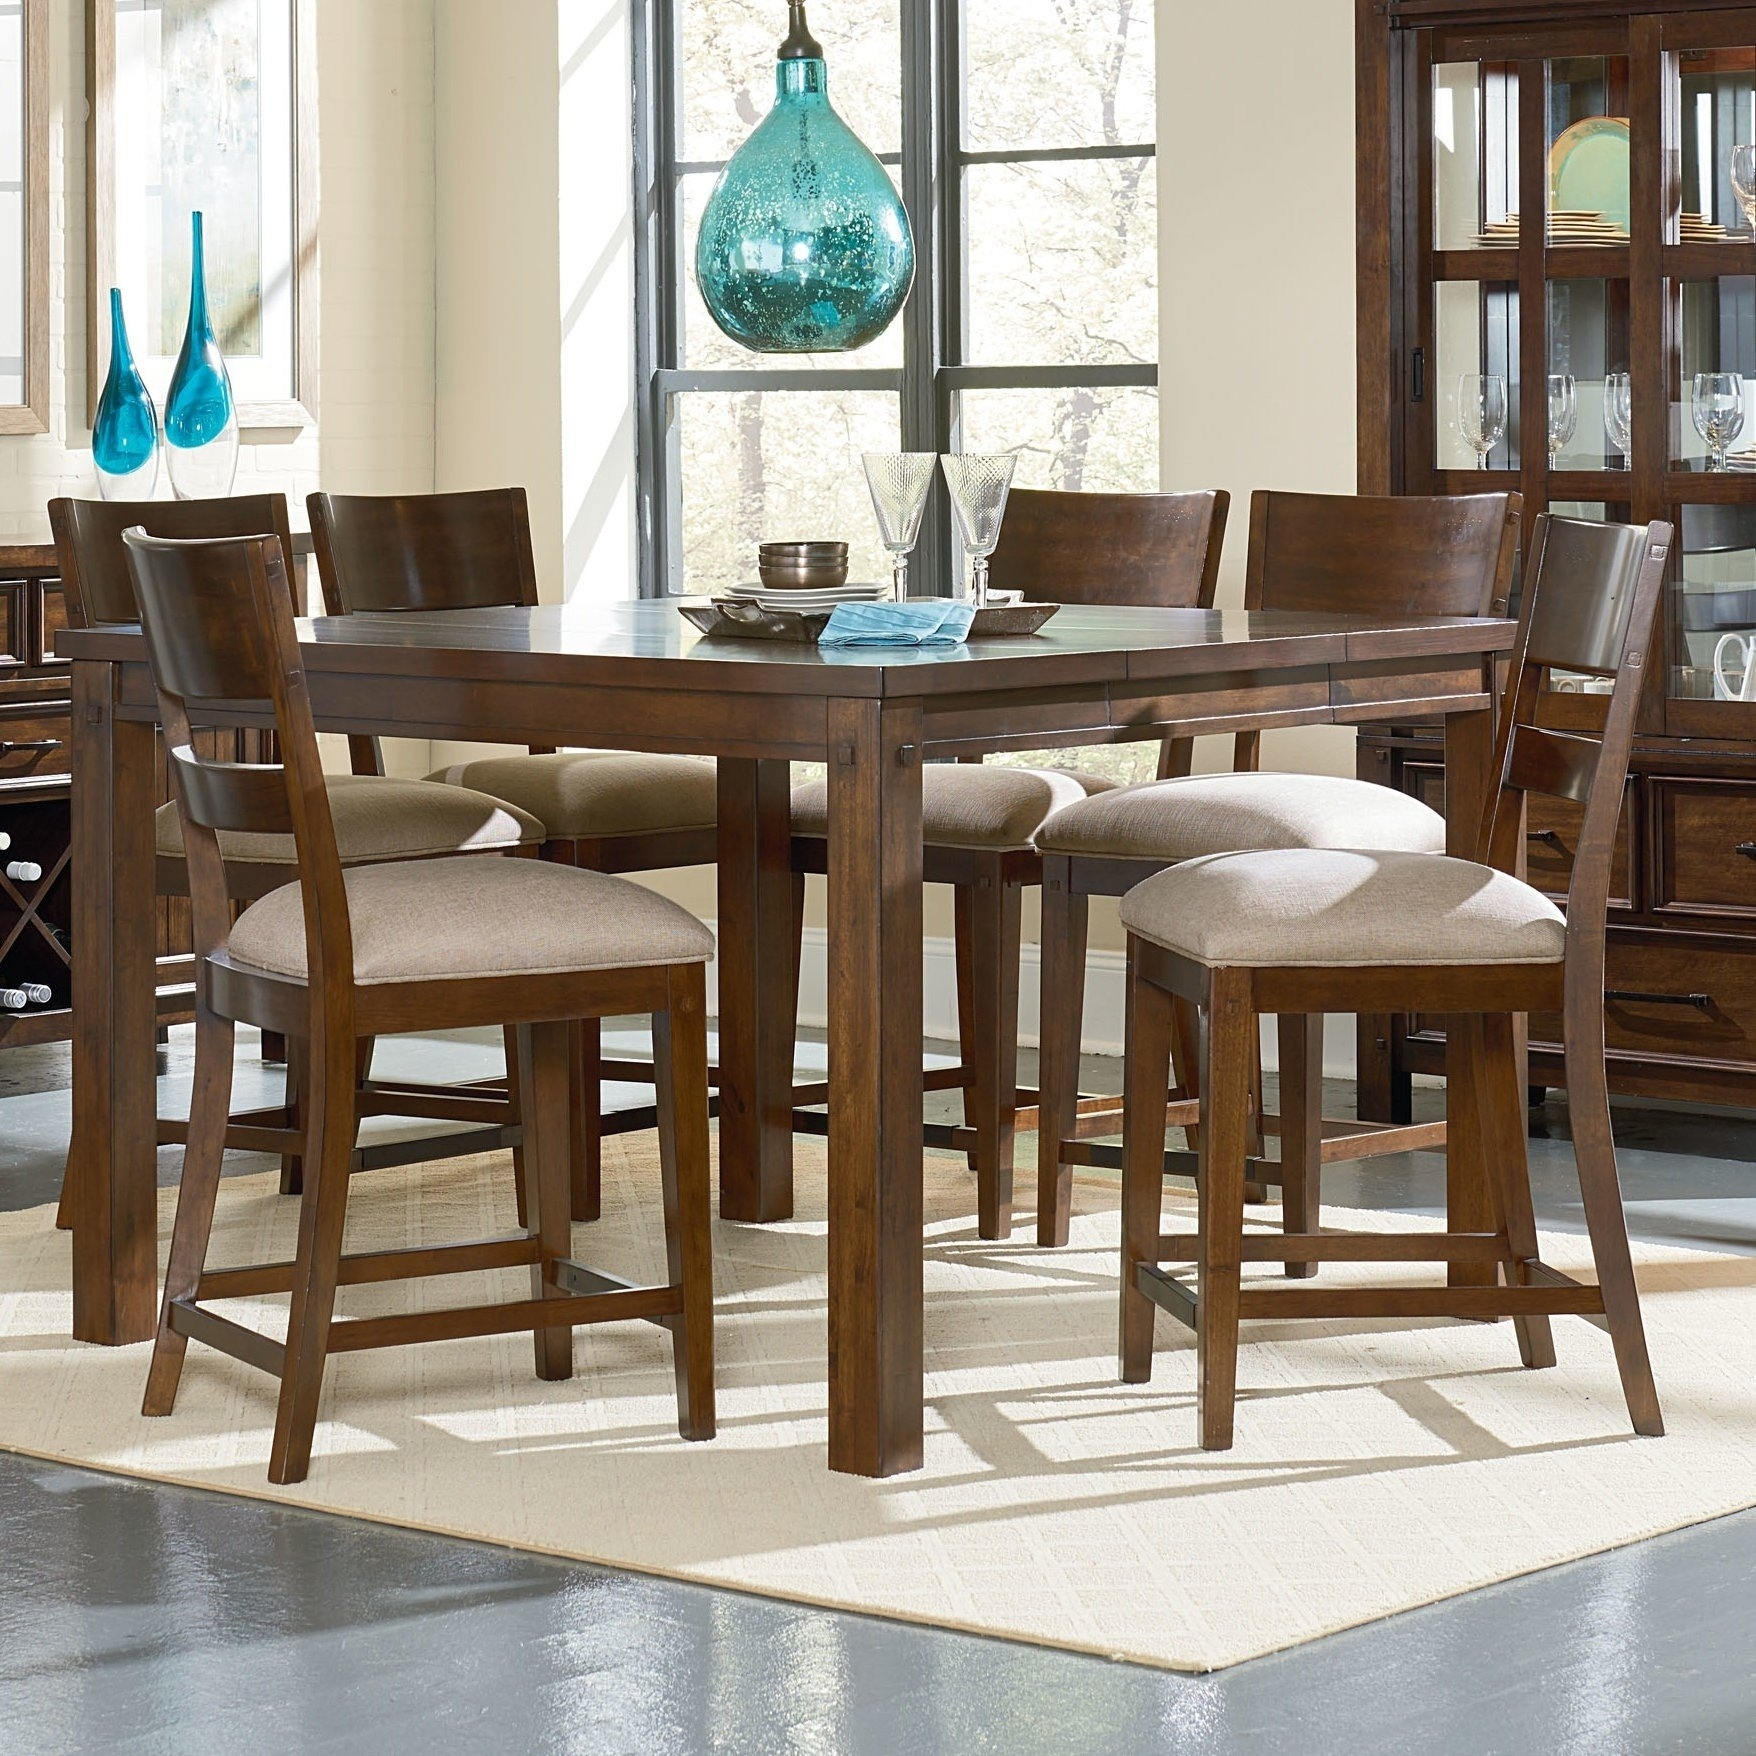 Square Dining Table For 6 – Visual Hunt Throughout Current Parquet 7 Piece Dining Sets (View 20 of 20)